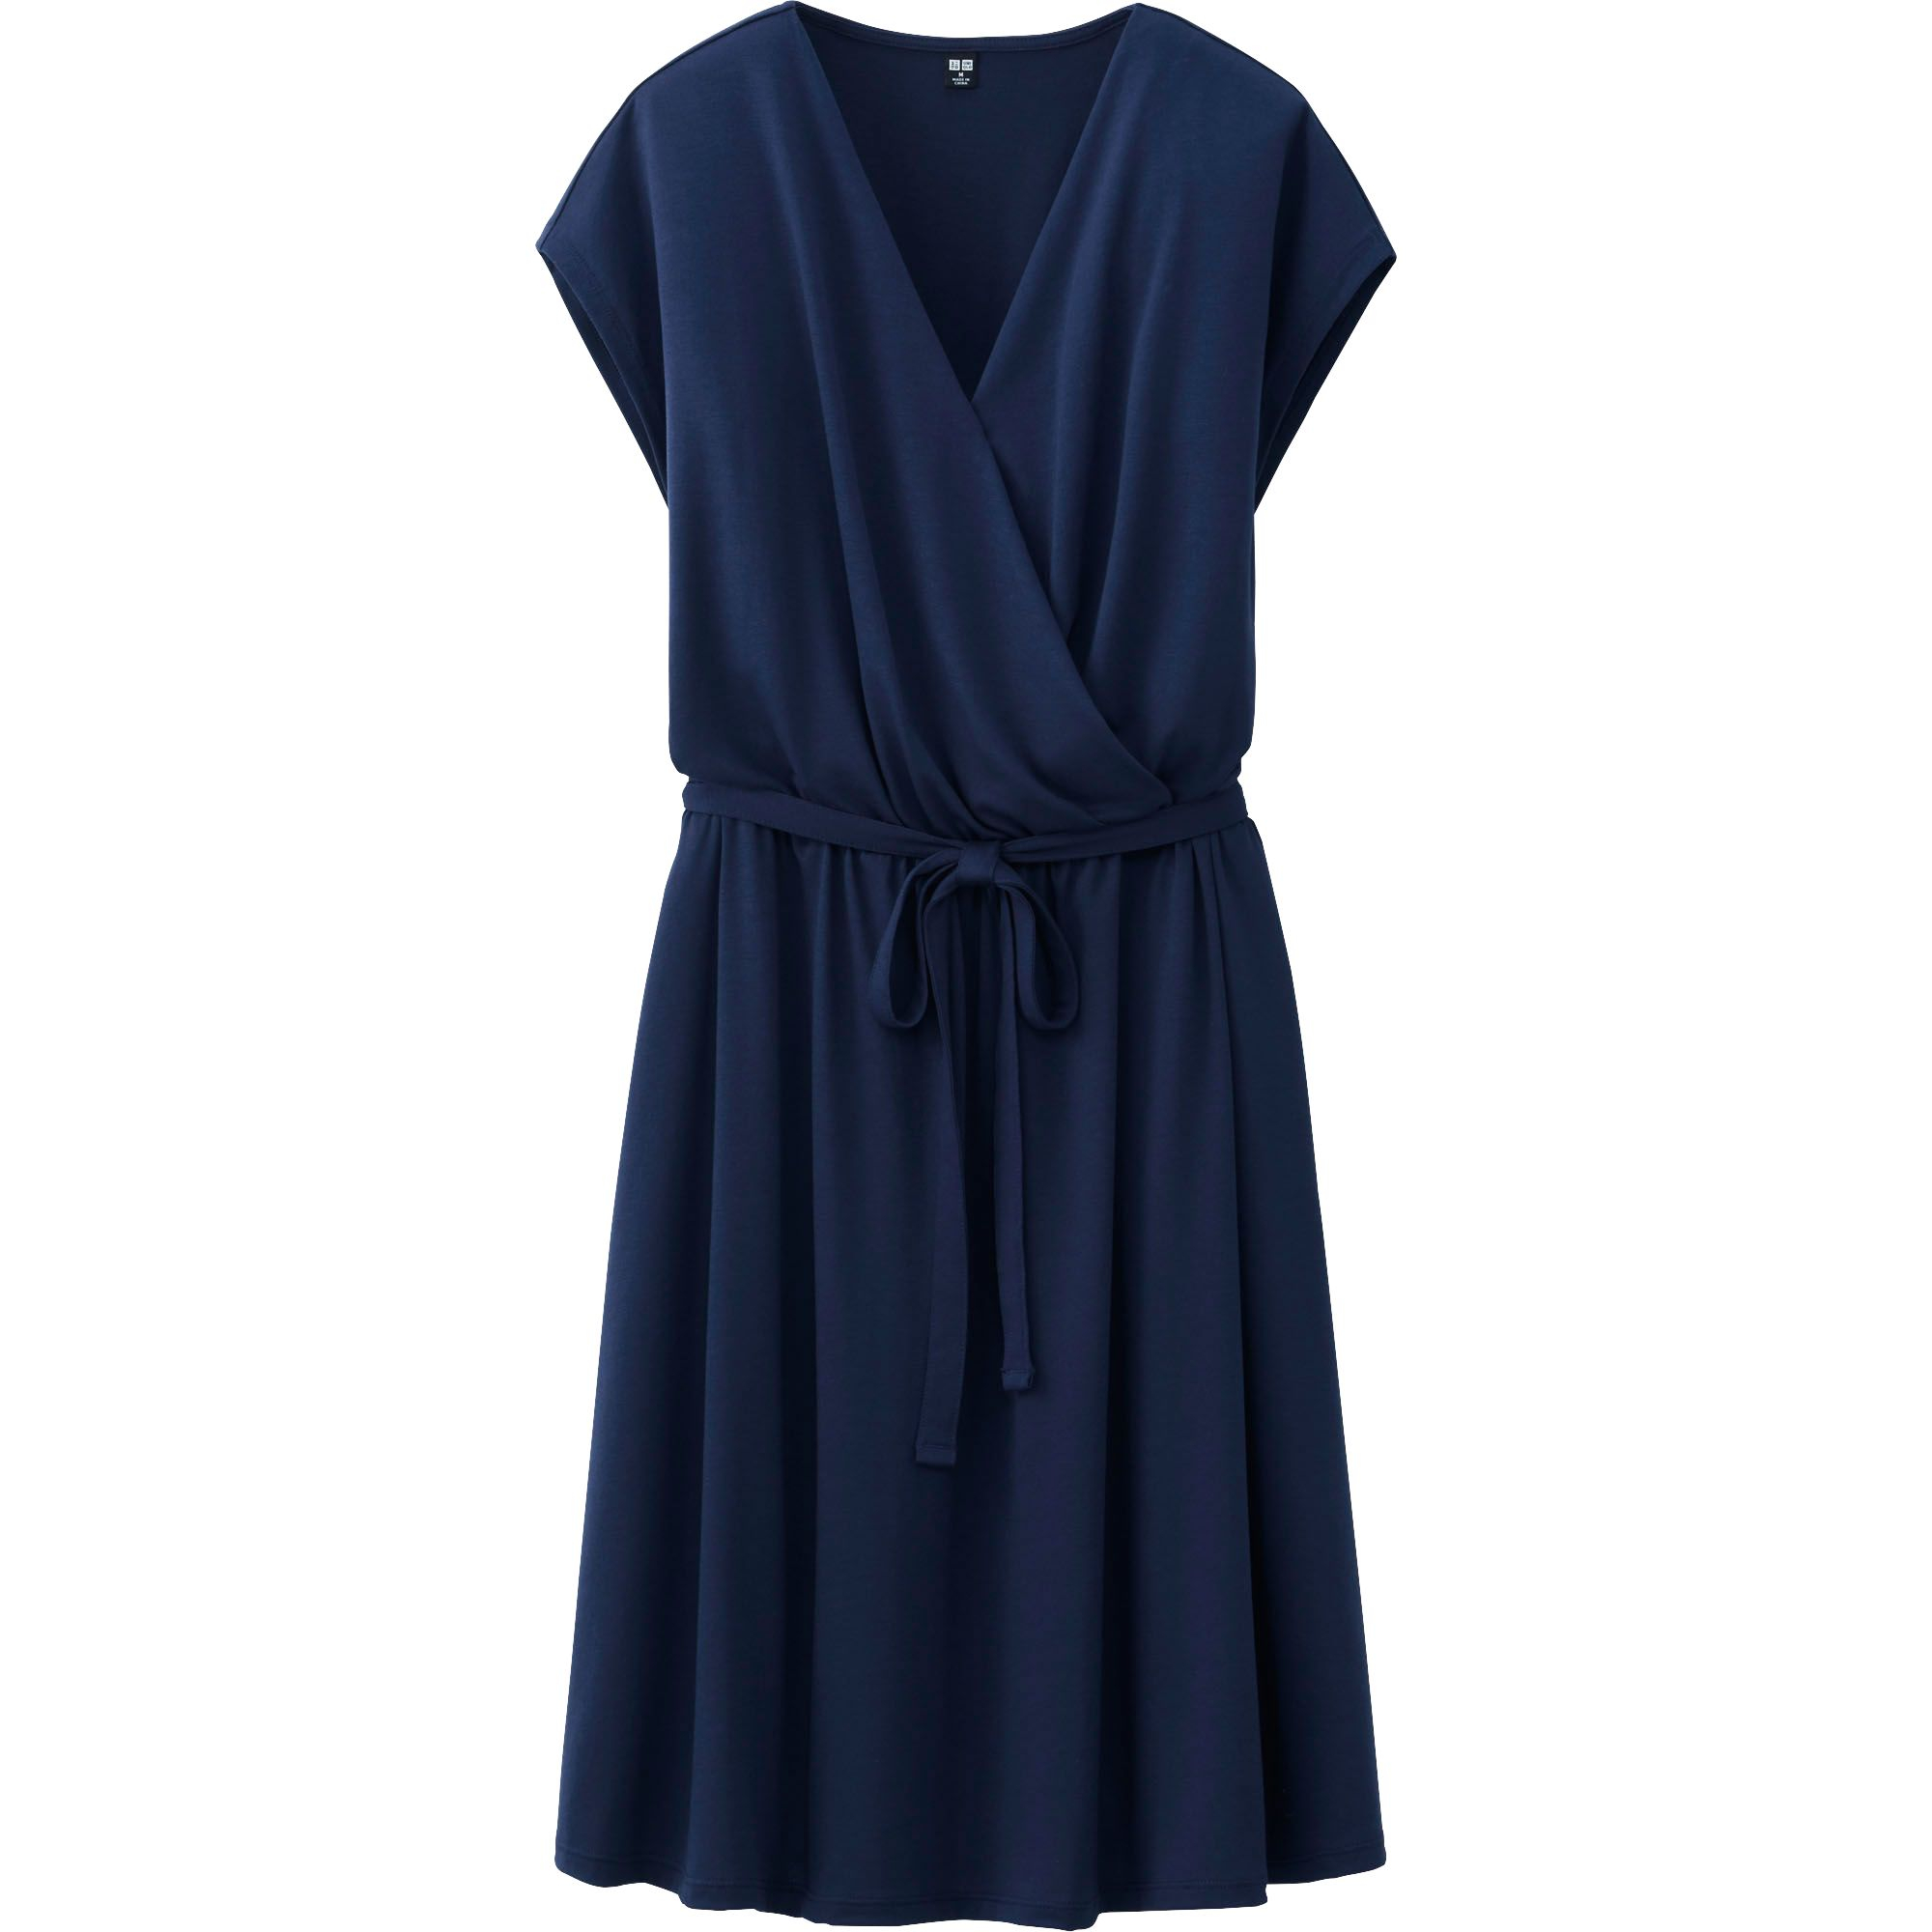 Model  UNIQLO Dresses Amp Skirts On Pinterest  Jersey Flare Dress And Cotton